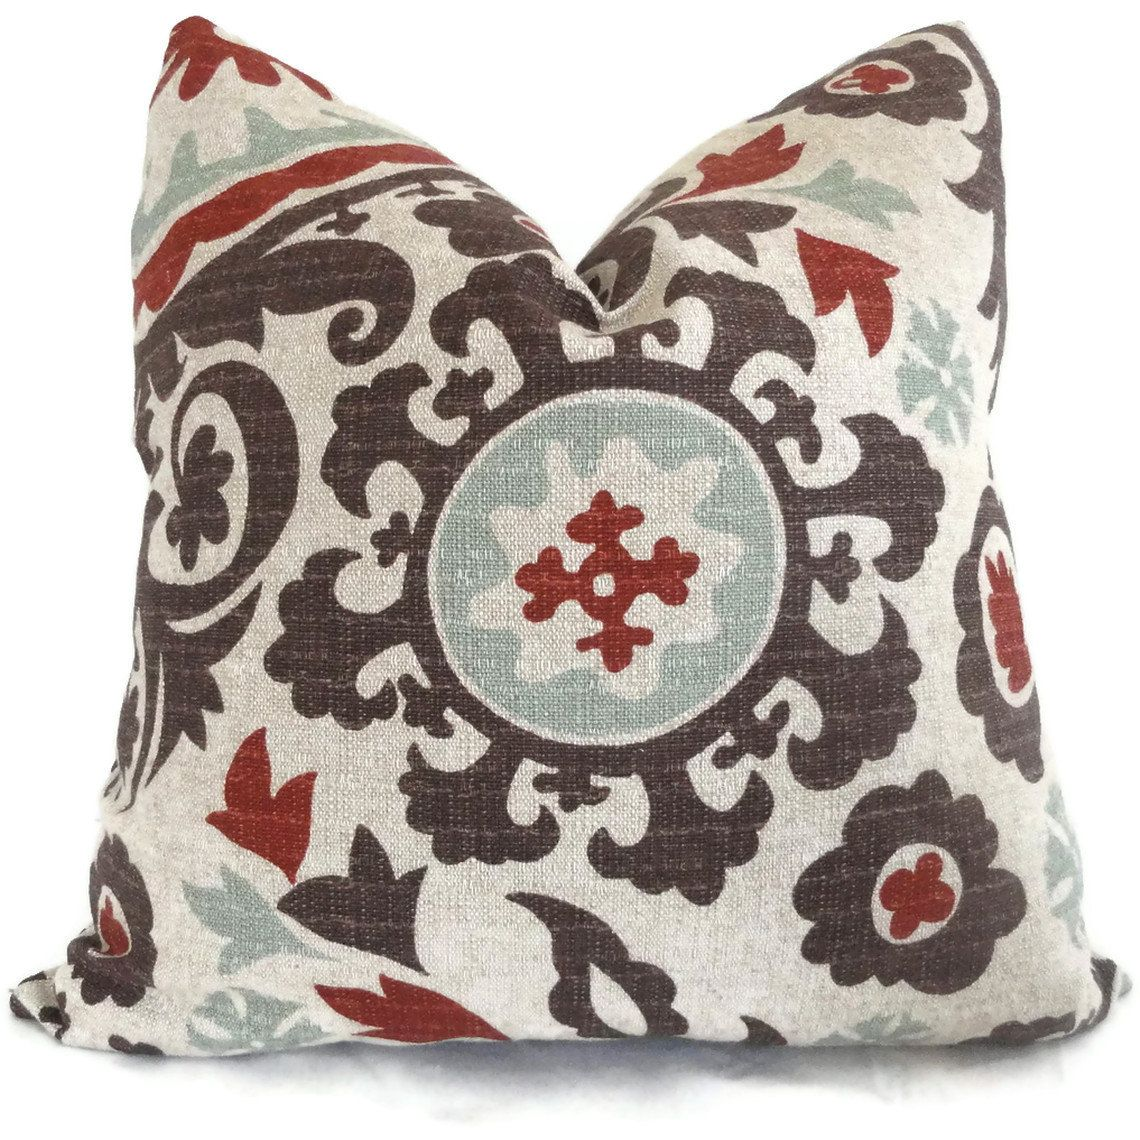 Living room and/or bedroom pillows? :: Brown, Aqua, Red Suzani Decorative Pillow Cover 18x18 ...